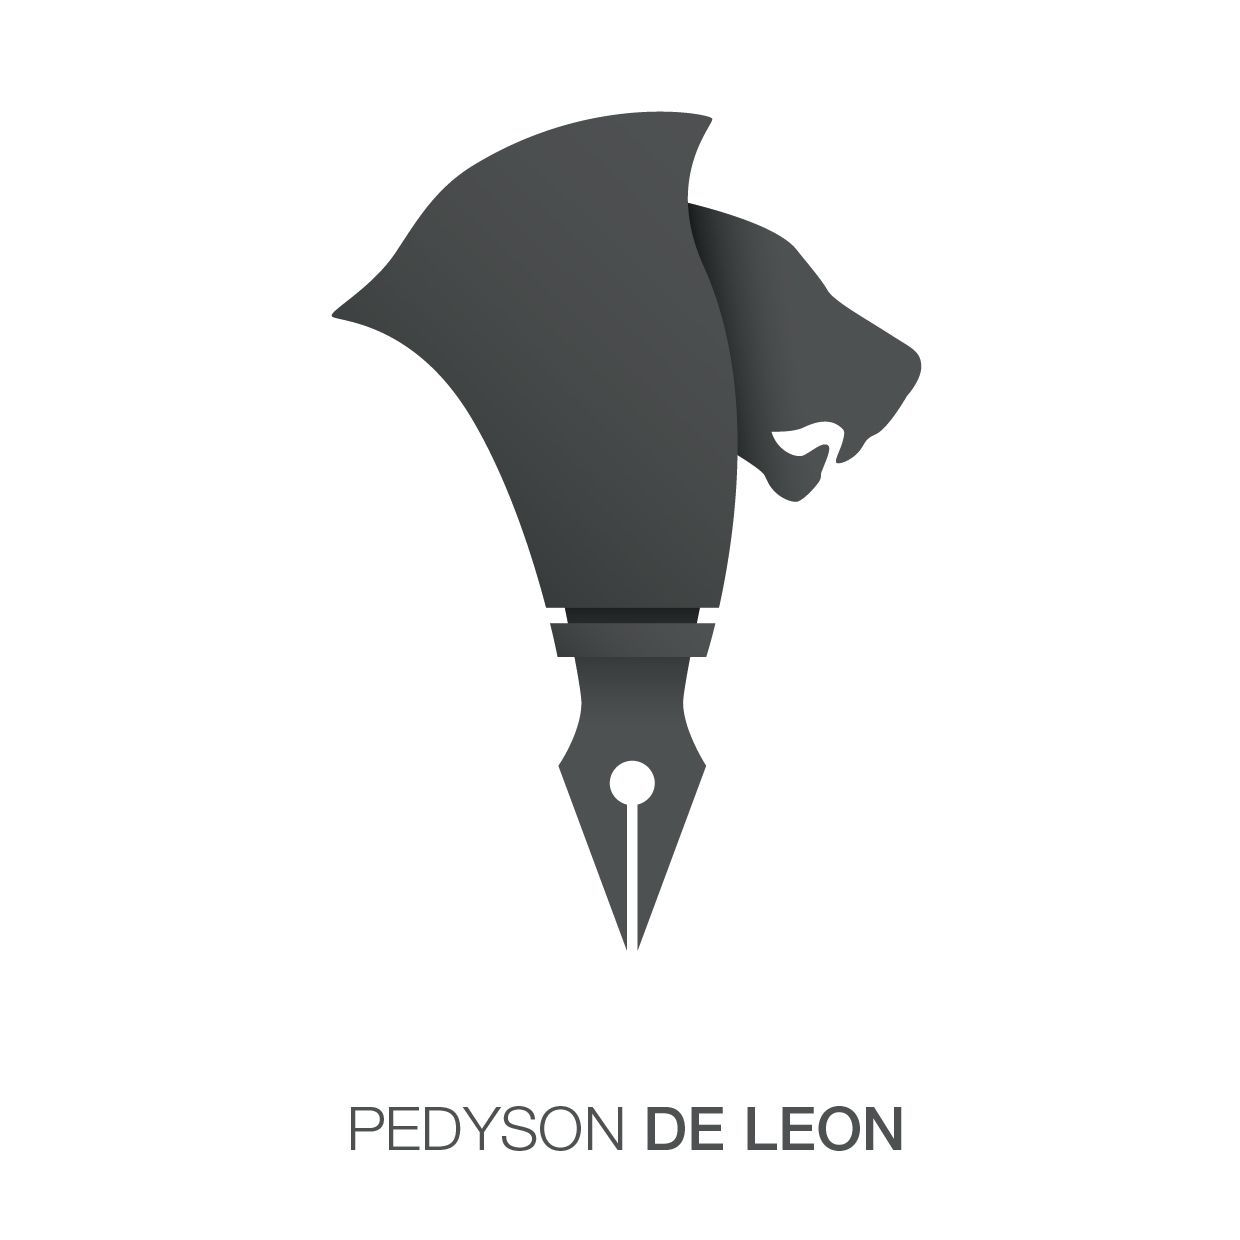 Logo Design by Pedyson for Philippine Logo Design Awards 2013 ... for graphic designer personal logo examples  111bof